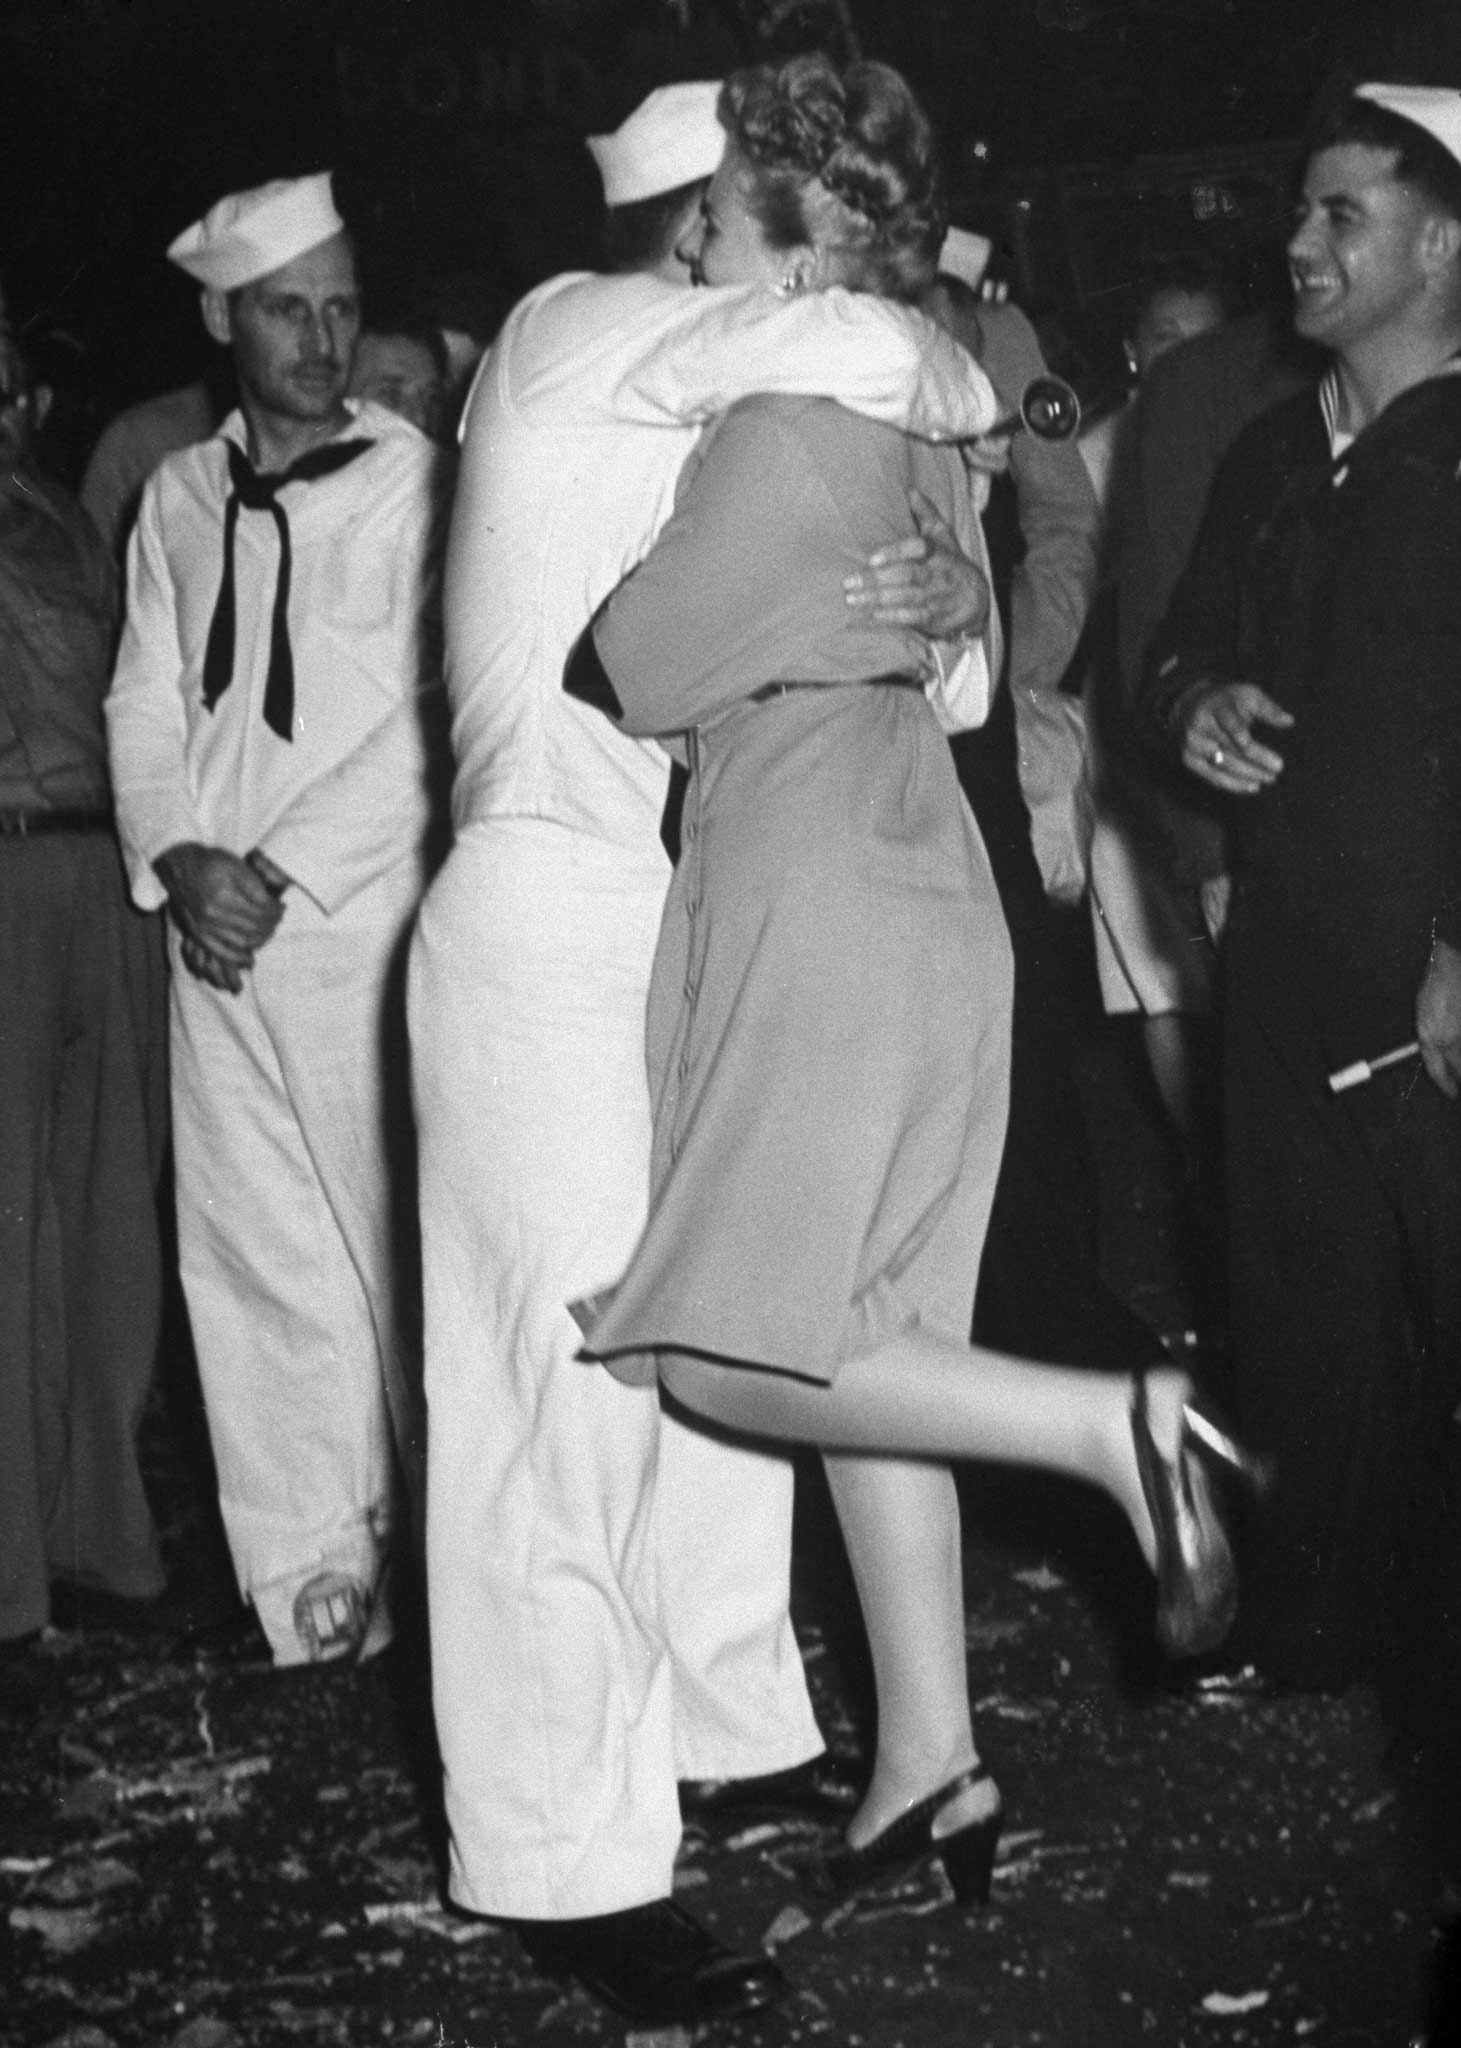 Not published in LIFE. V-J Day in New York City, August 14, 1945.